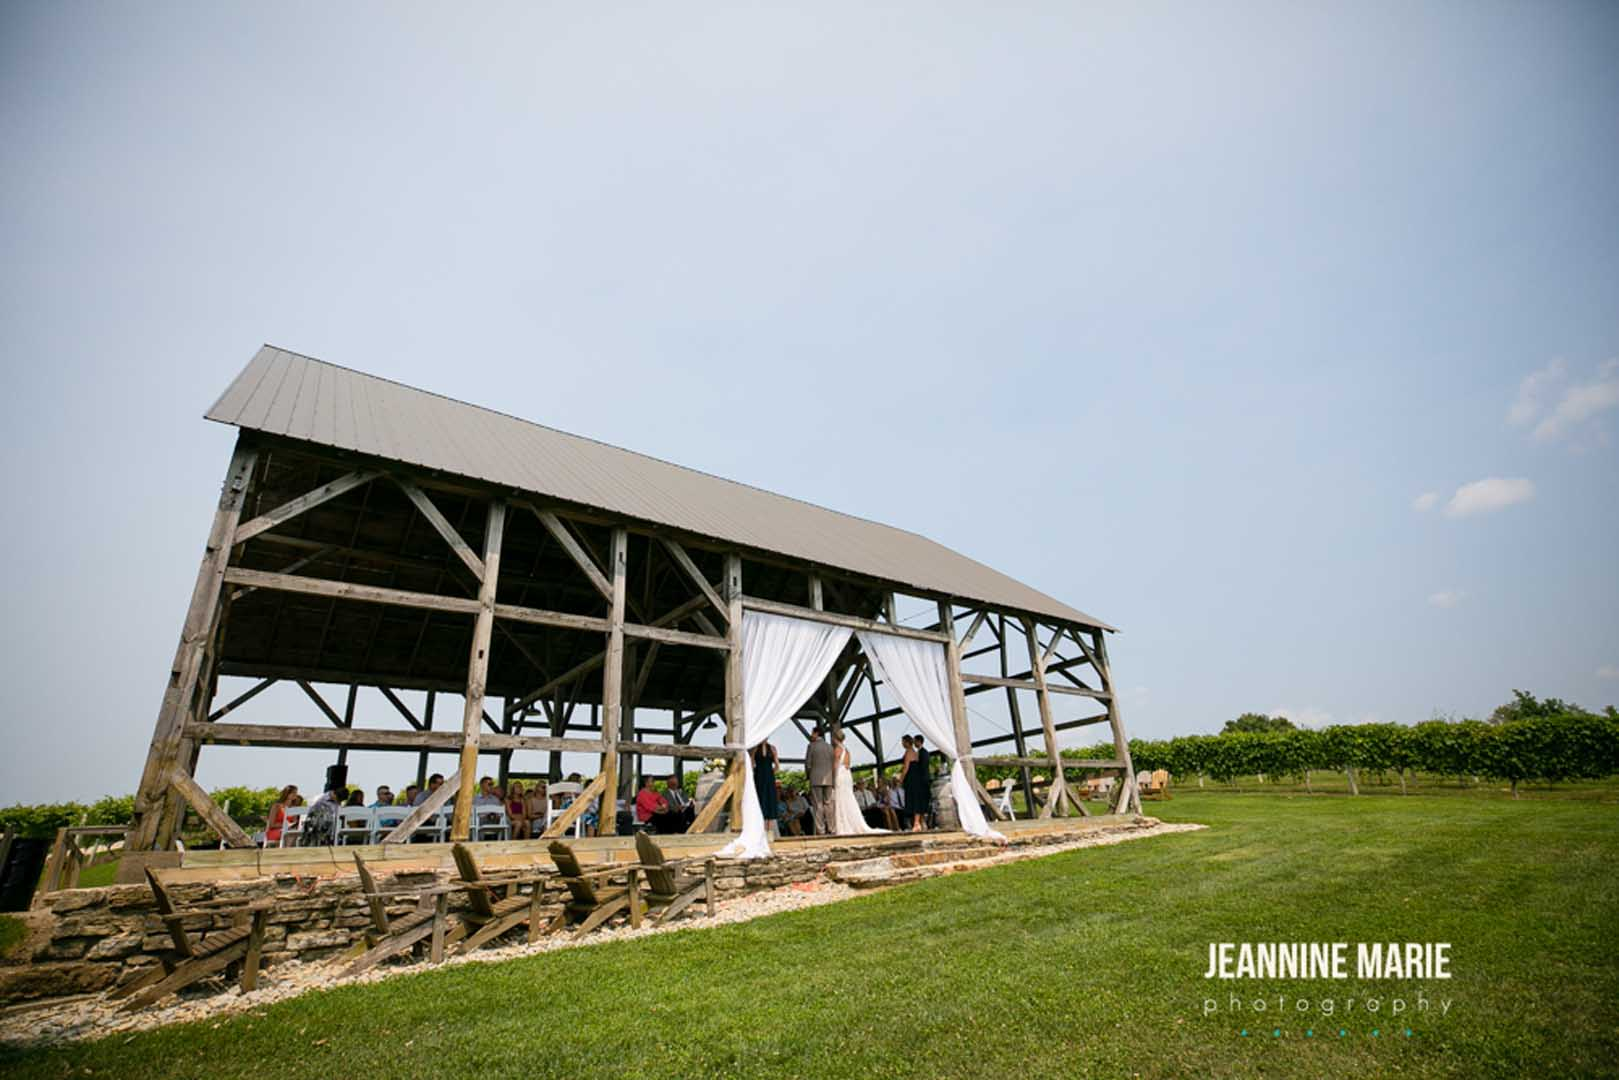 Timber barn wedding venue surrounded by grape vines